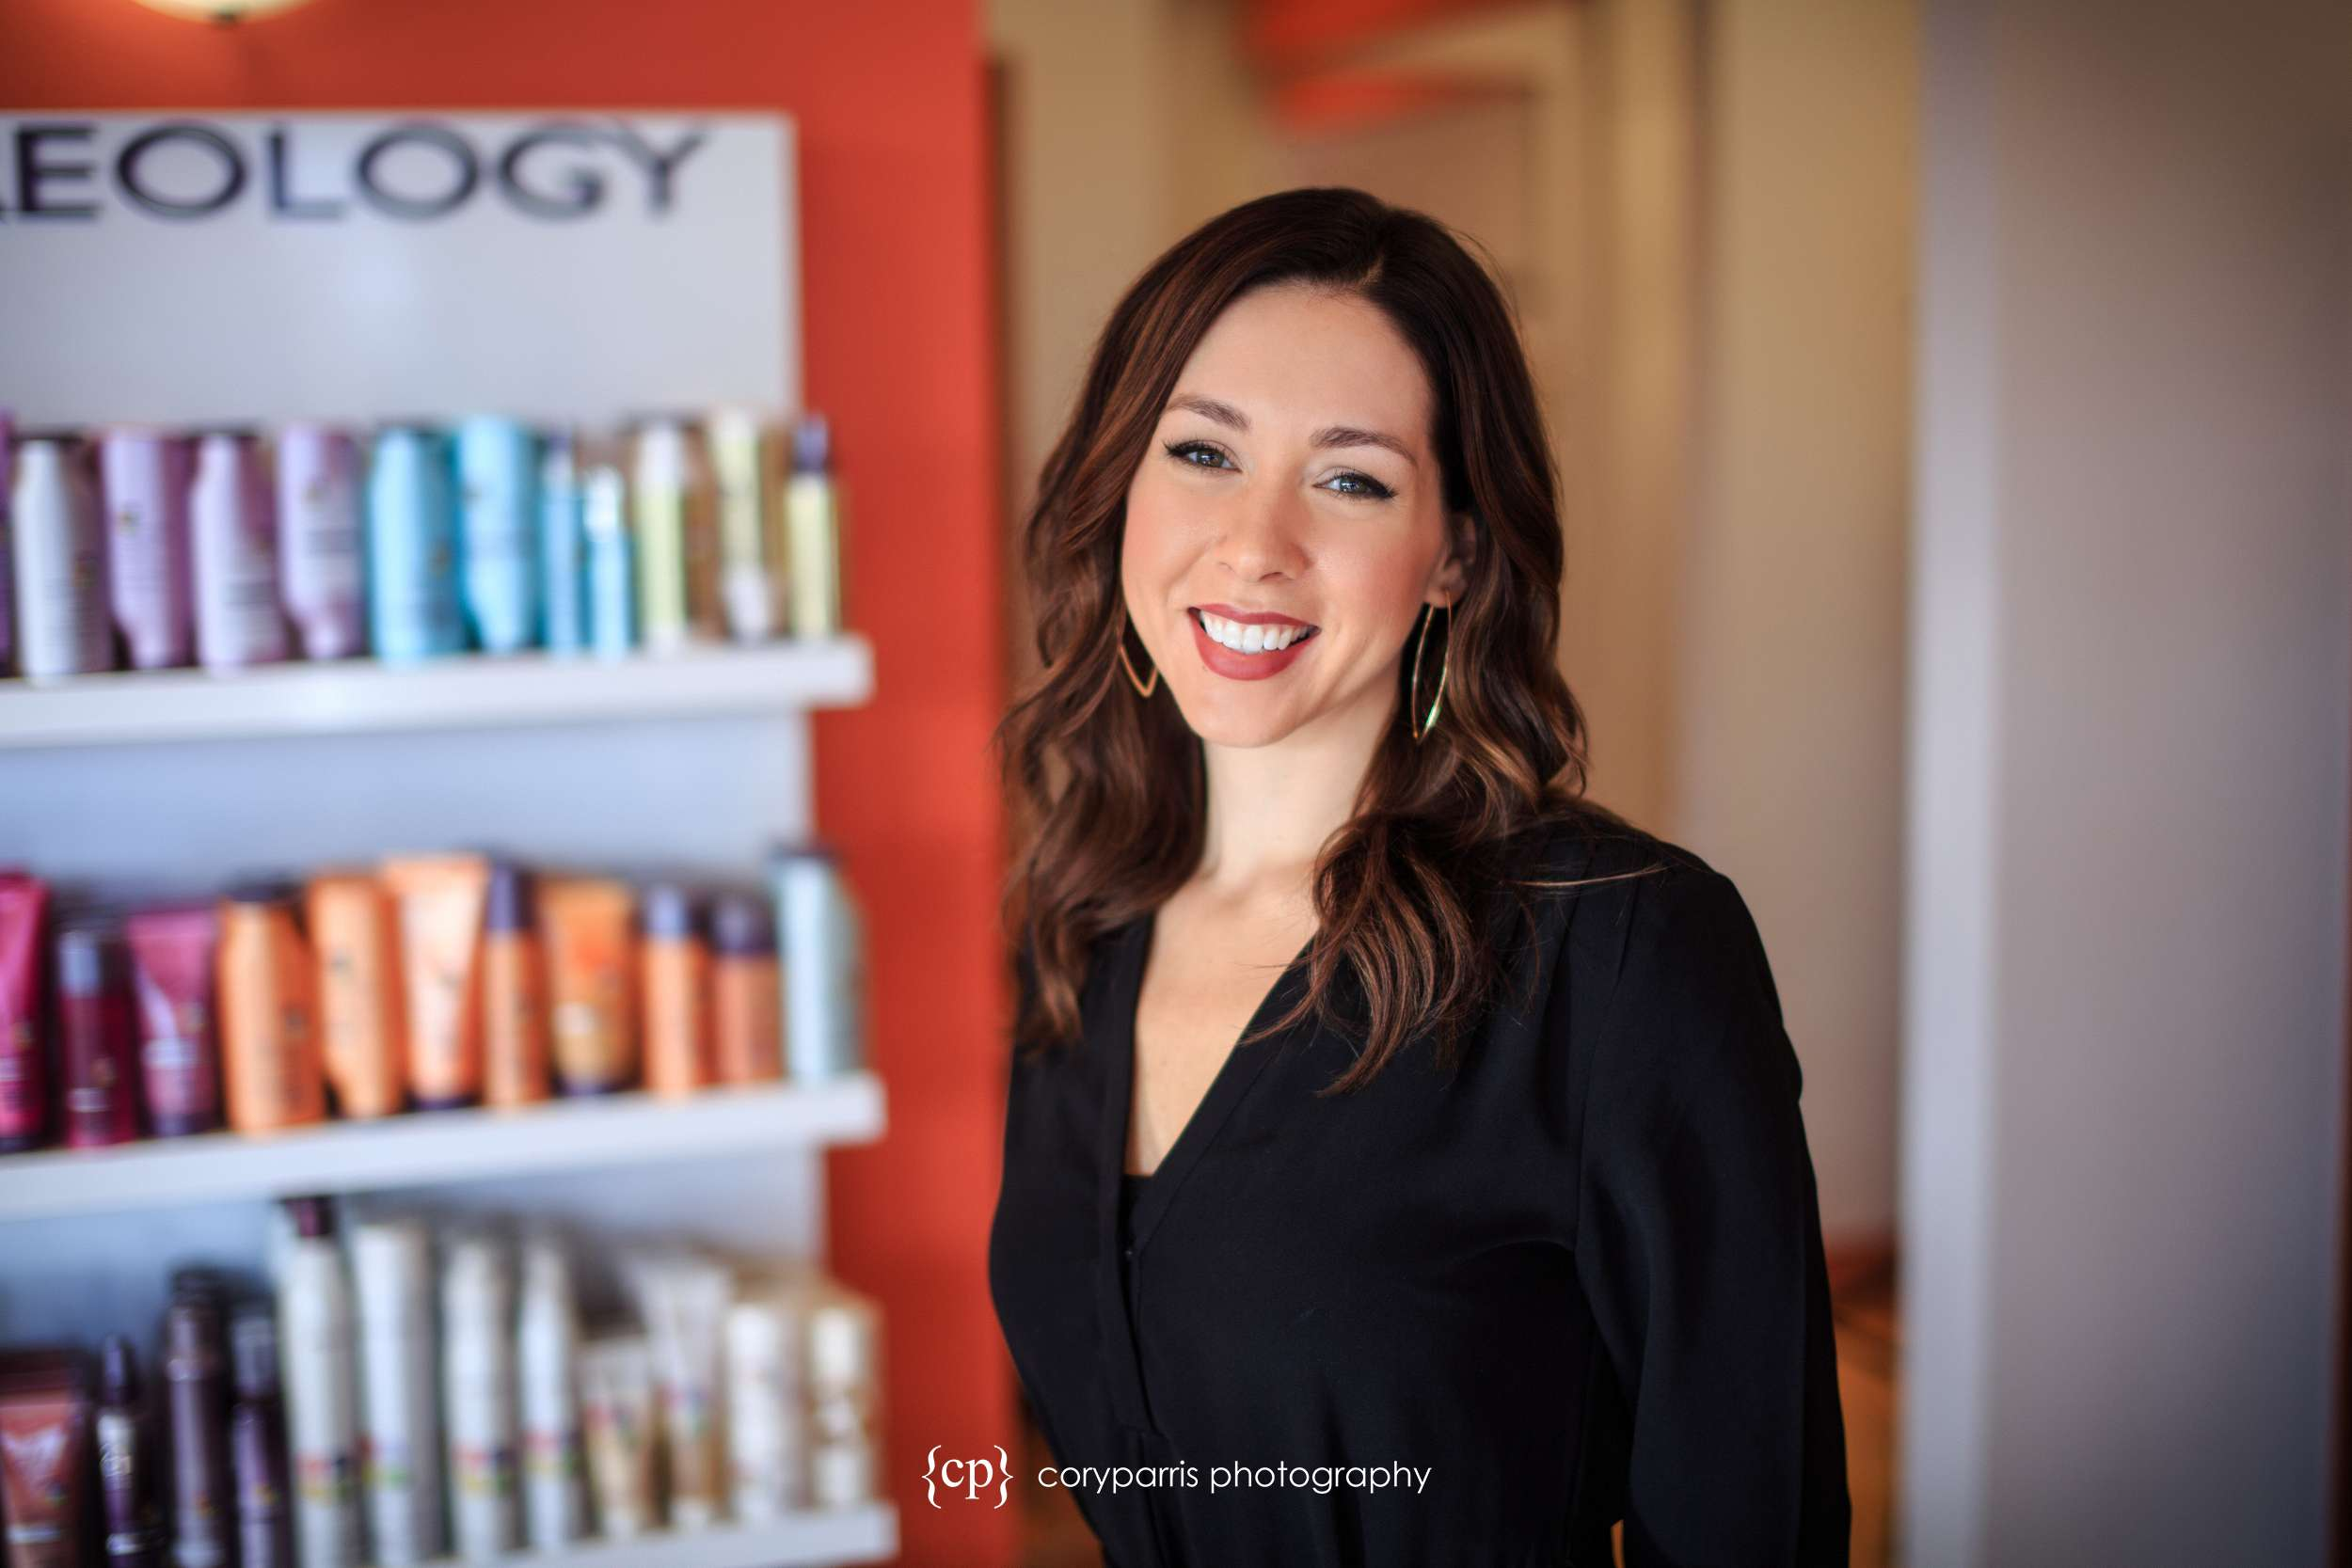 Lindsay, the owner of Salon Zuberenz. This business portrait was taken in her Salon.